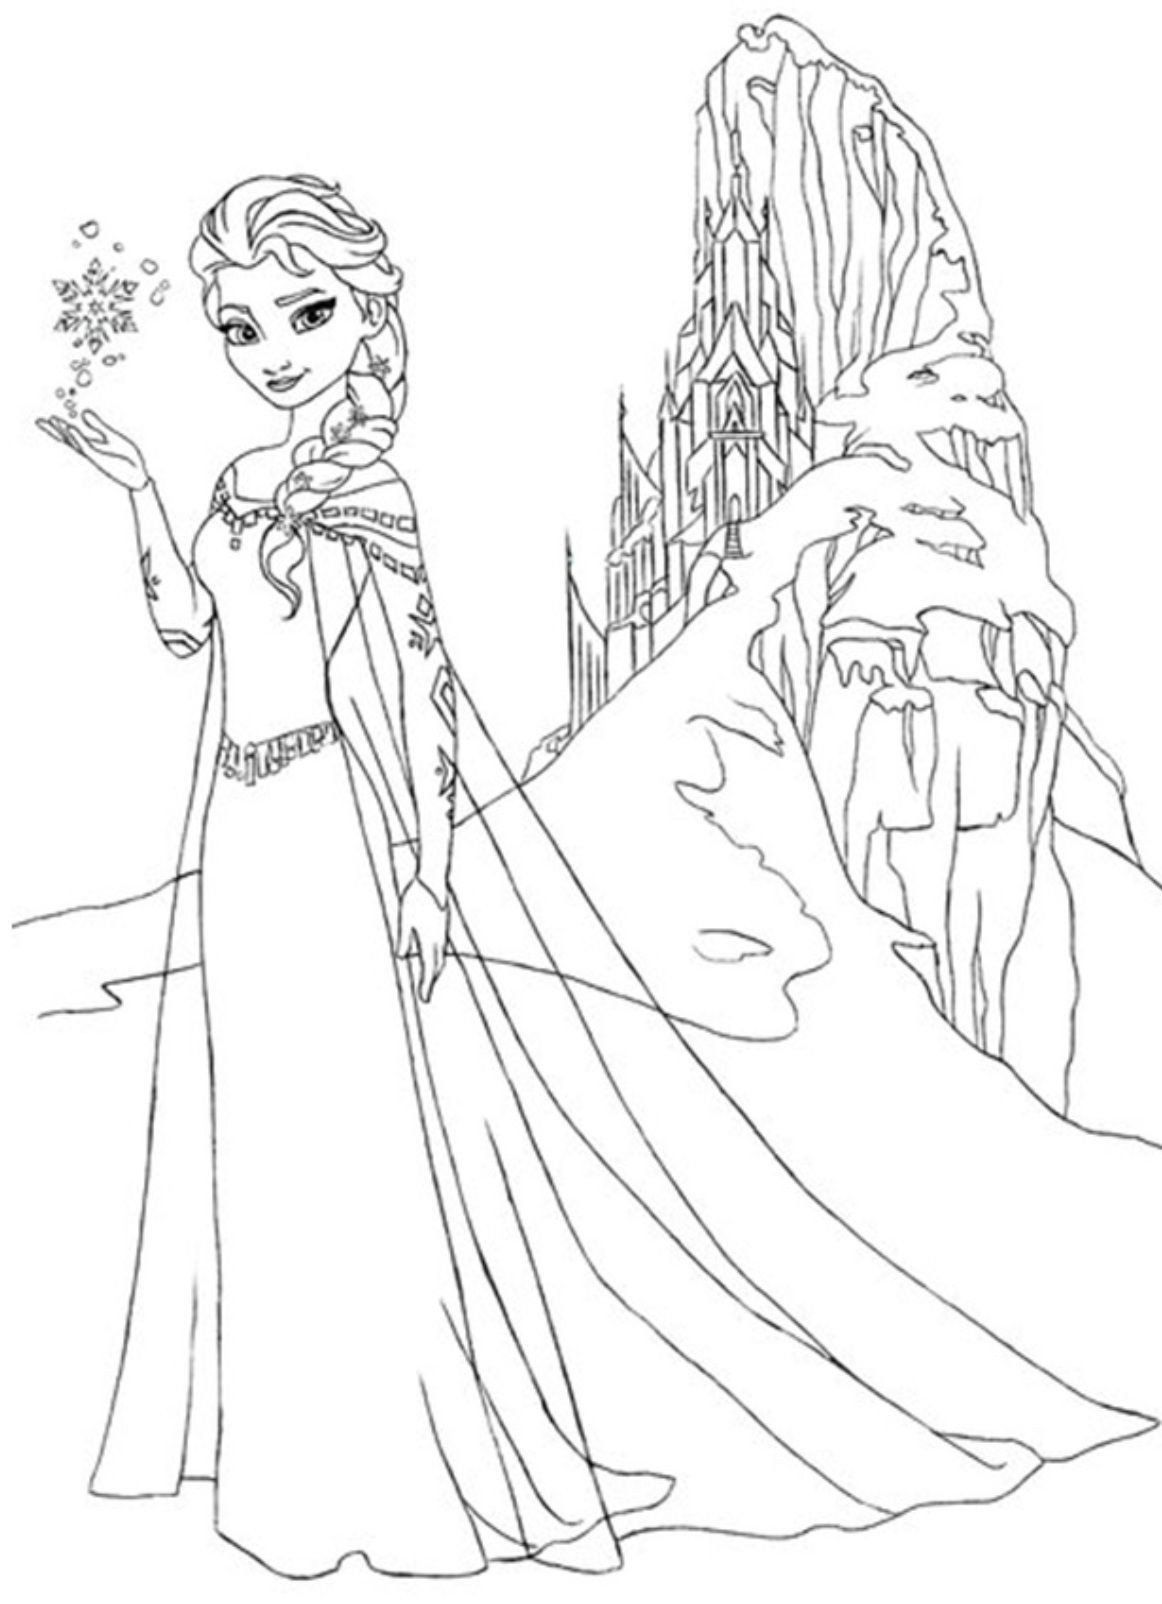 Anna And Elsa Coloring Sheet Download And Print Frozen Coloring Page Kifest K In 2020 Elsa Coloring Pages Frozen Coloring Pages Castle Coloring Page